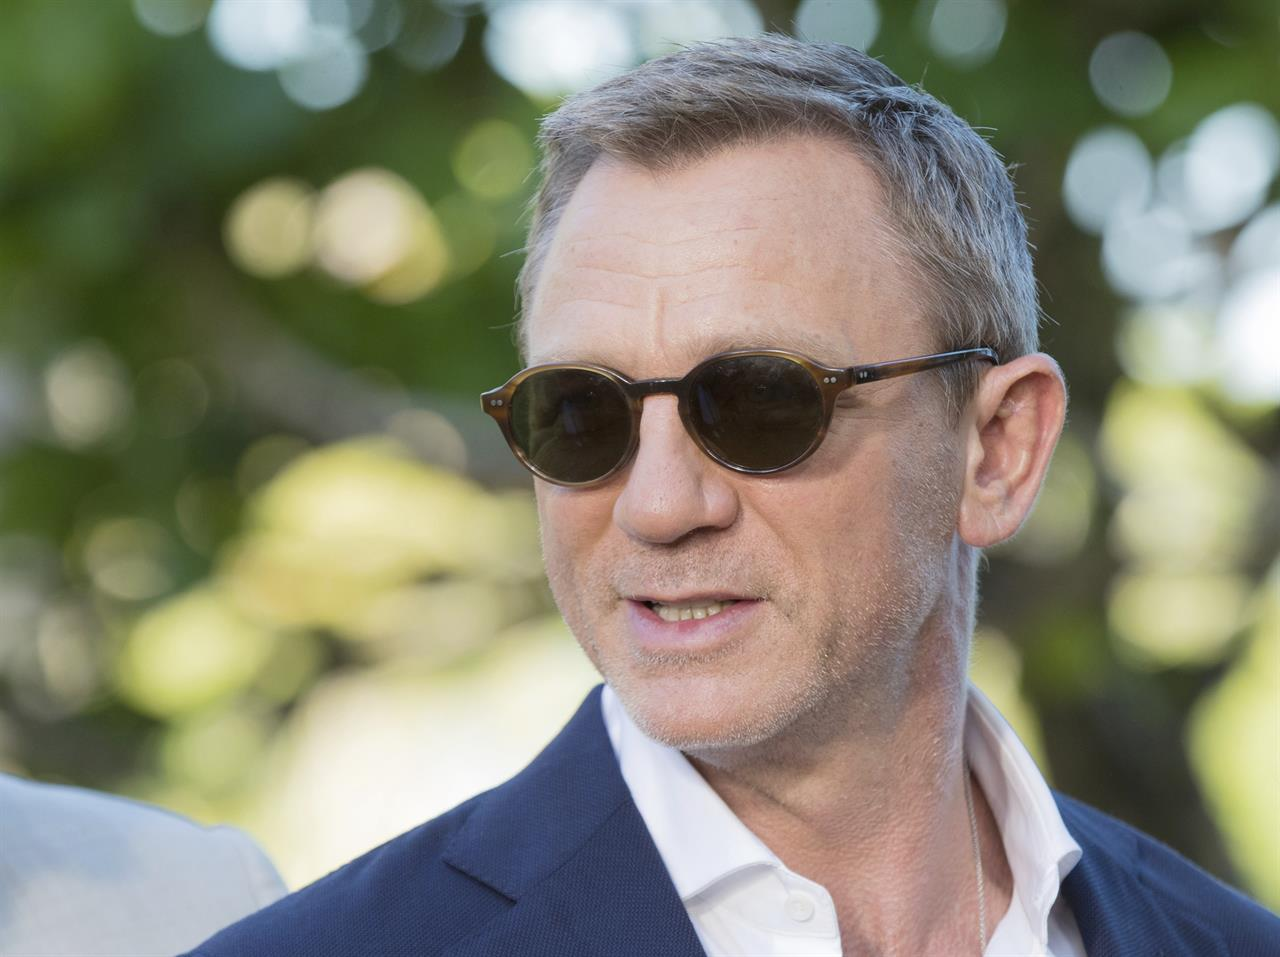 FILE - In this Thursday, Apriil 25, 2019 file photo, actor Daniel Craig poses for photographers during the photo call of the latest installment of the James Bond film franchise, in Oracabessa, Jamaica. Producers of the forthcoming James Bond thriller say the film's release has been delayed again, until the fall of 2021, because of the effects of the coronavirus pandemic. The official 007 Twitter account said late Thursday, Jan. 21, 2021 that the 25th installment in the franchise will now open on Oct. 8. (AP Photo/Leo Hudson, File)